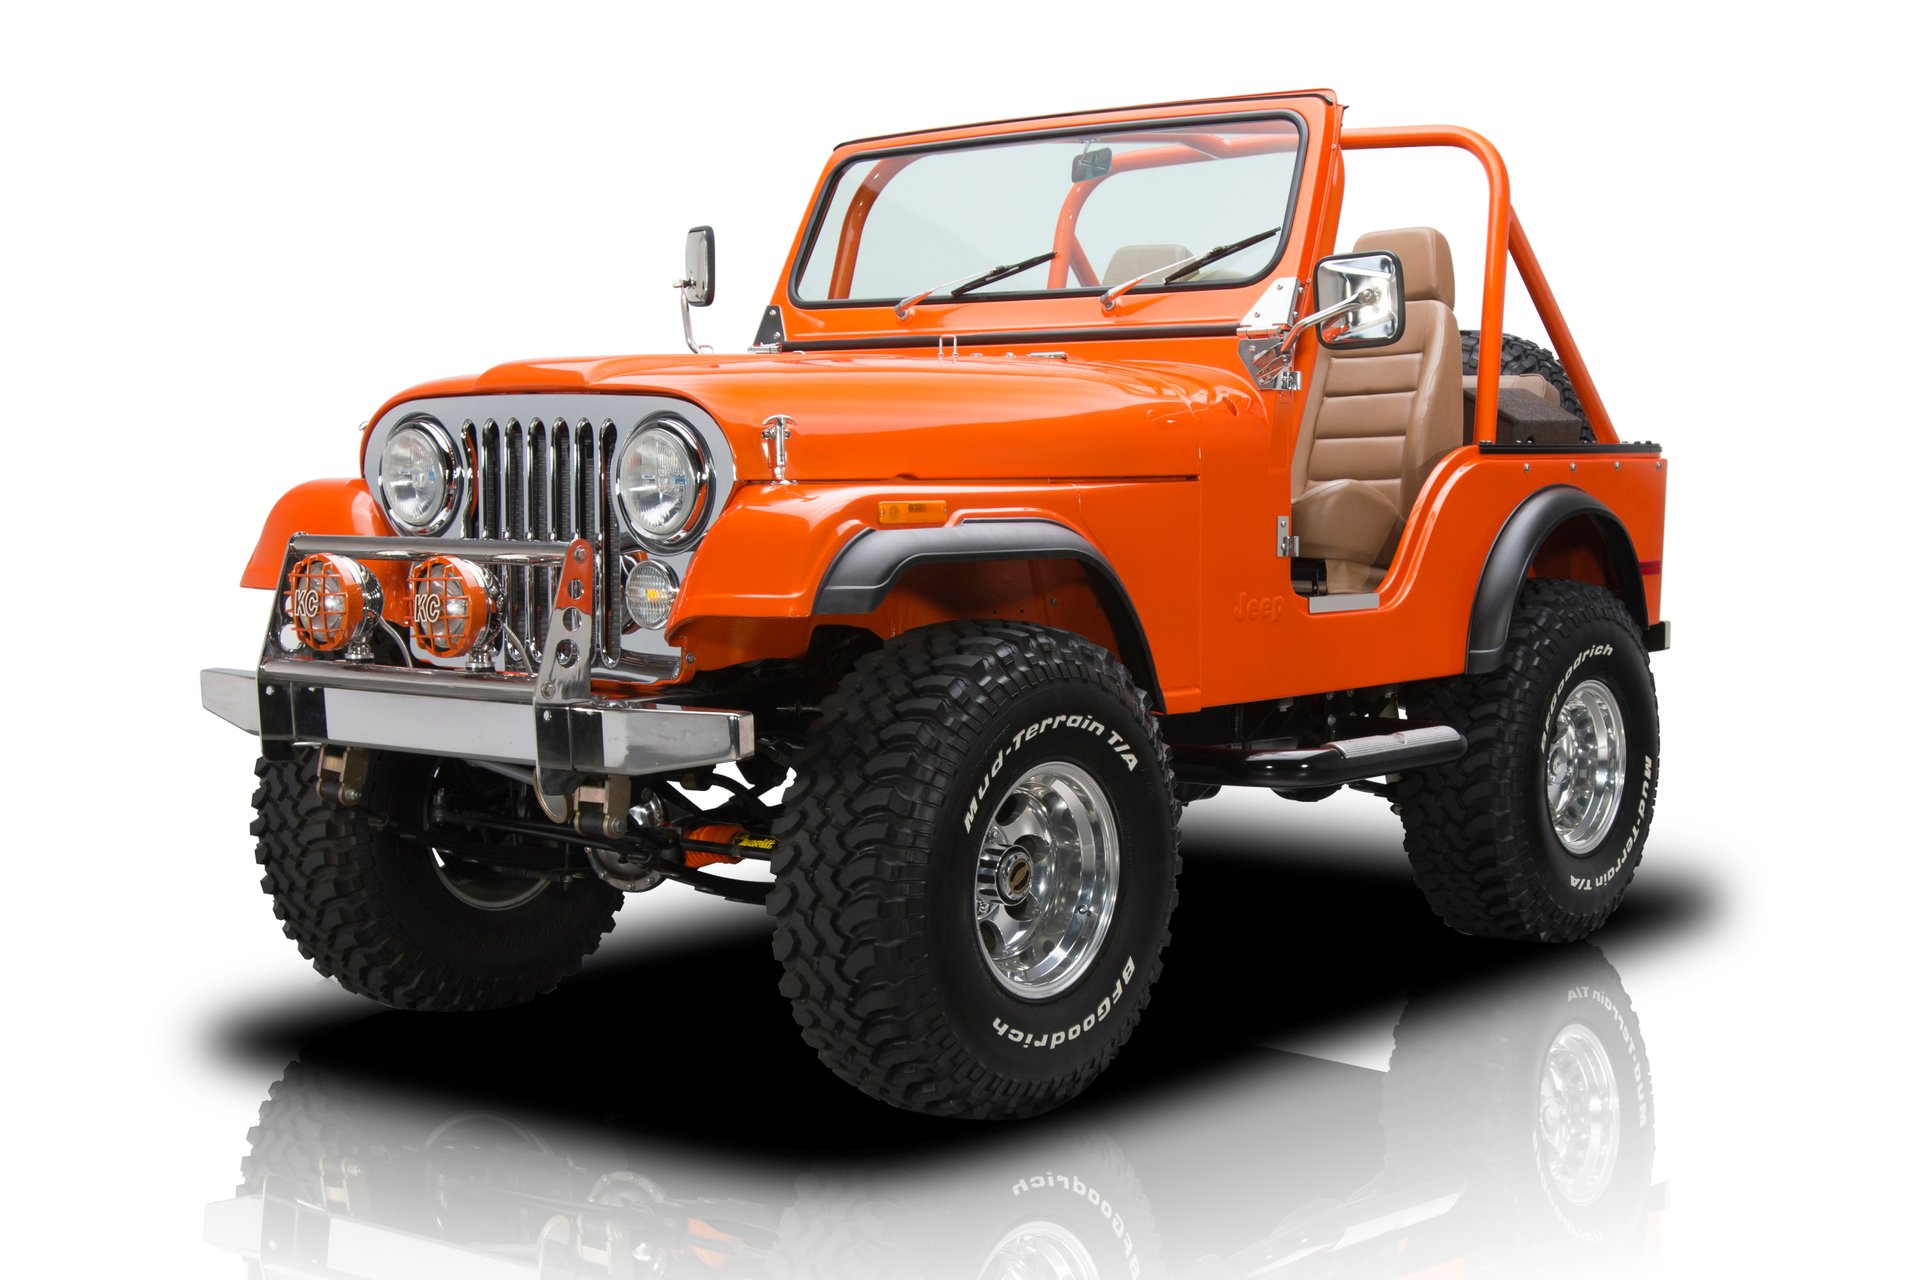 hight resolution of body off restored jeep cj 5 350 v8 4 speed manual ps 4 wheel drive roll bar